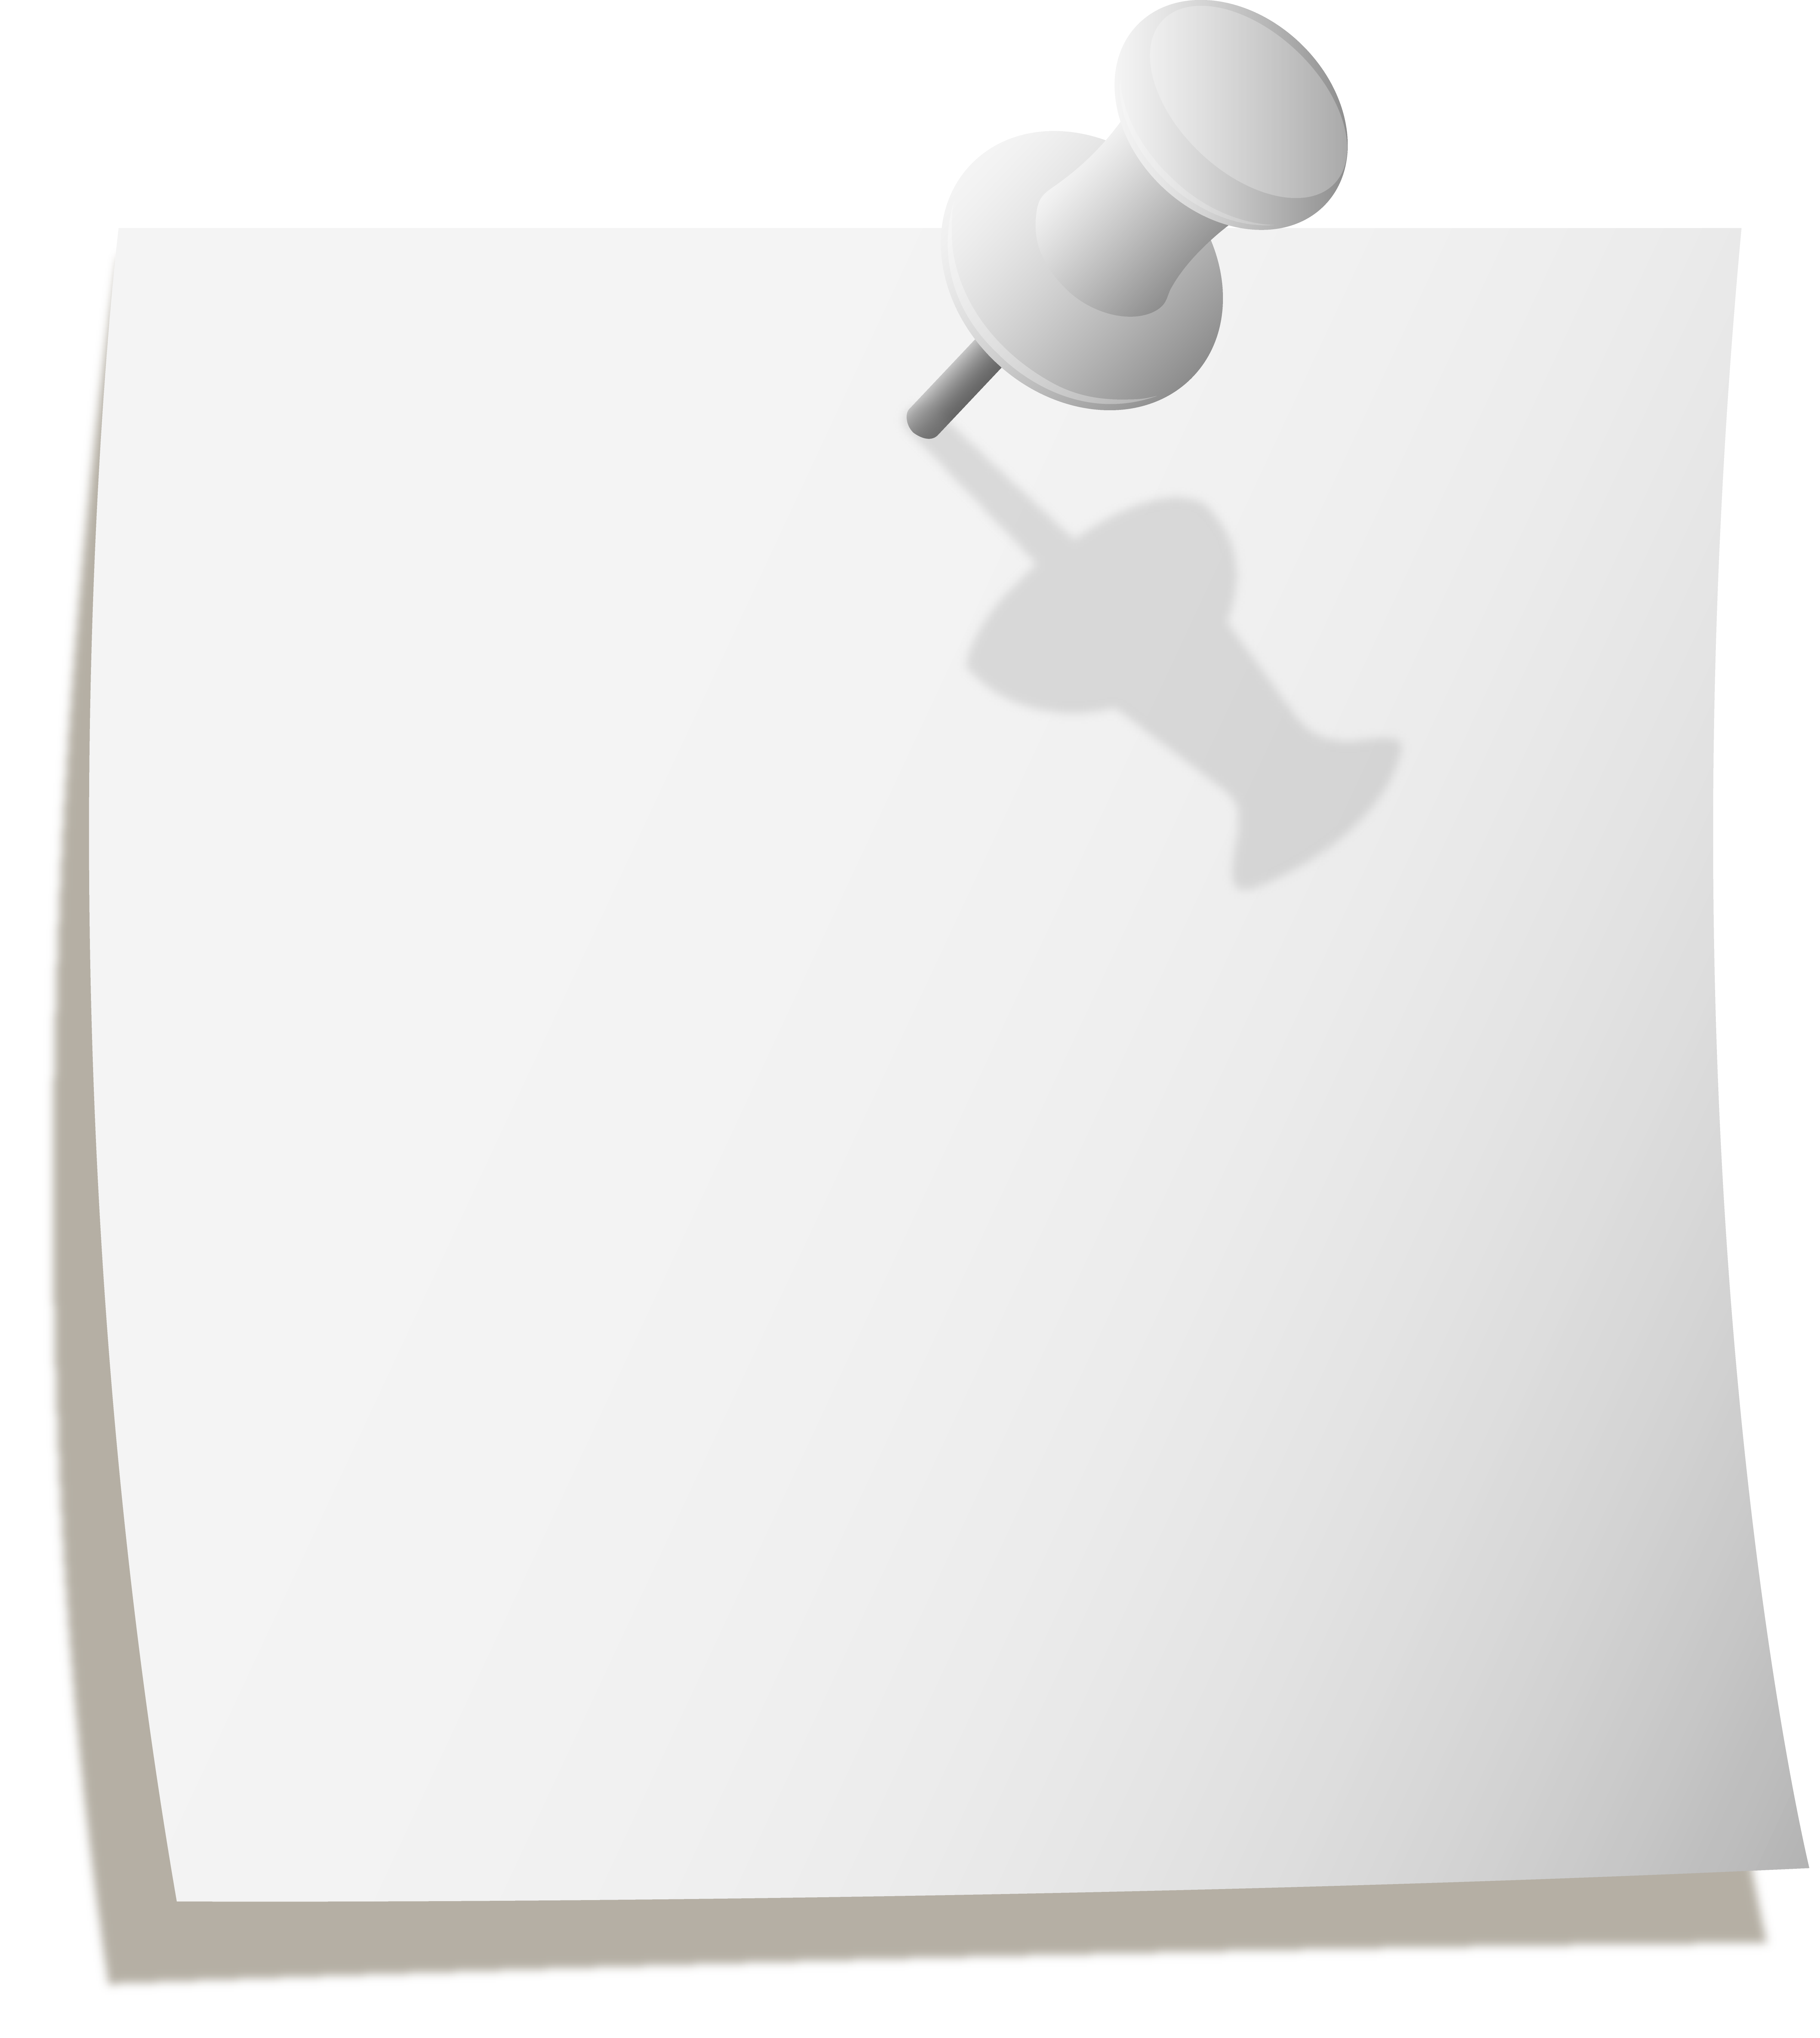 Note Paper Clipart | Free download on ClipArtMag